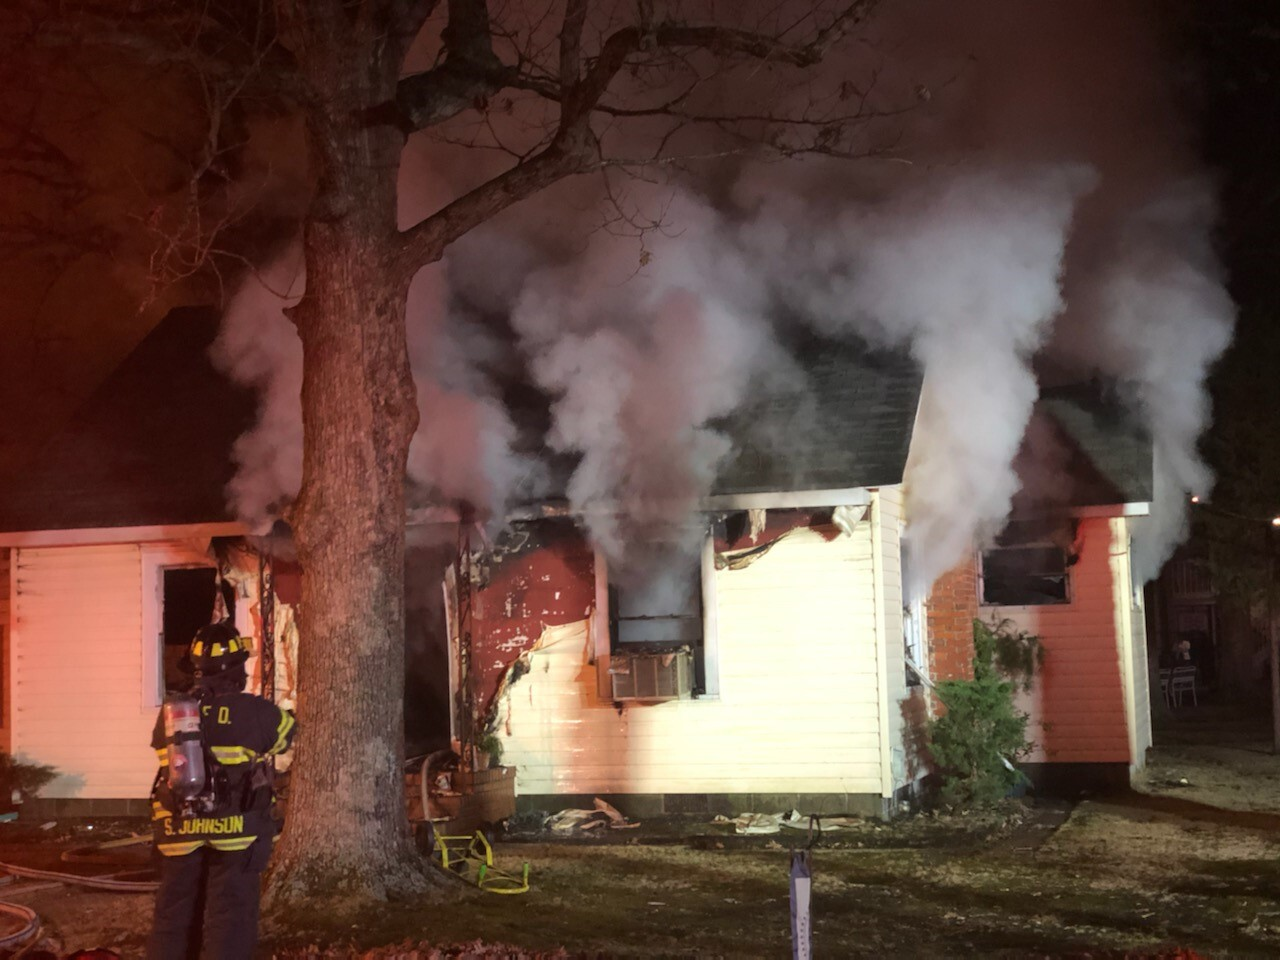 Photos: Woman found dead in Newport News house fire onChristmas